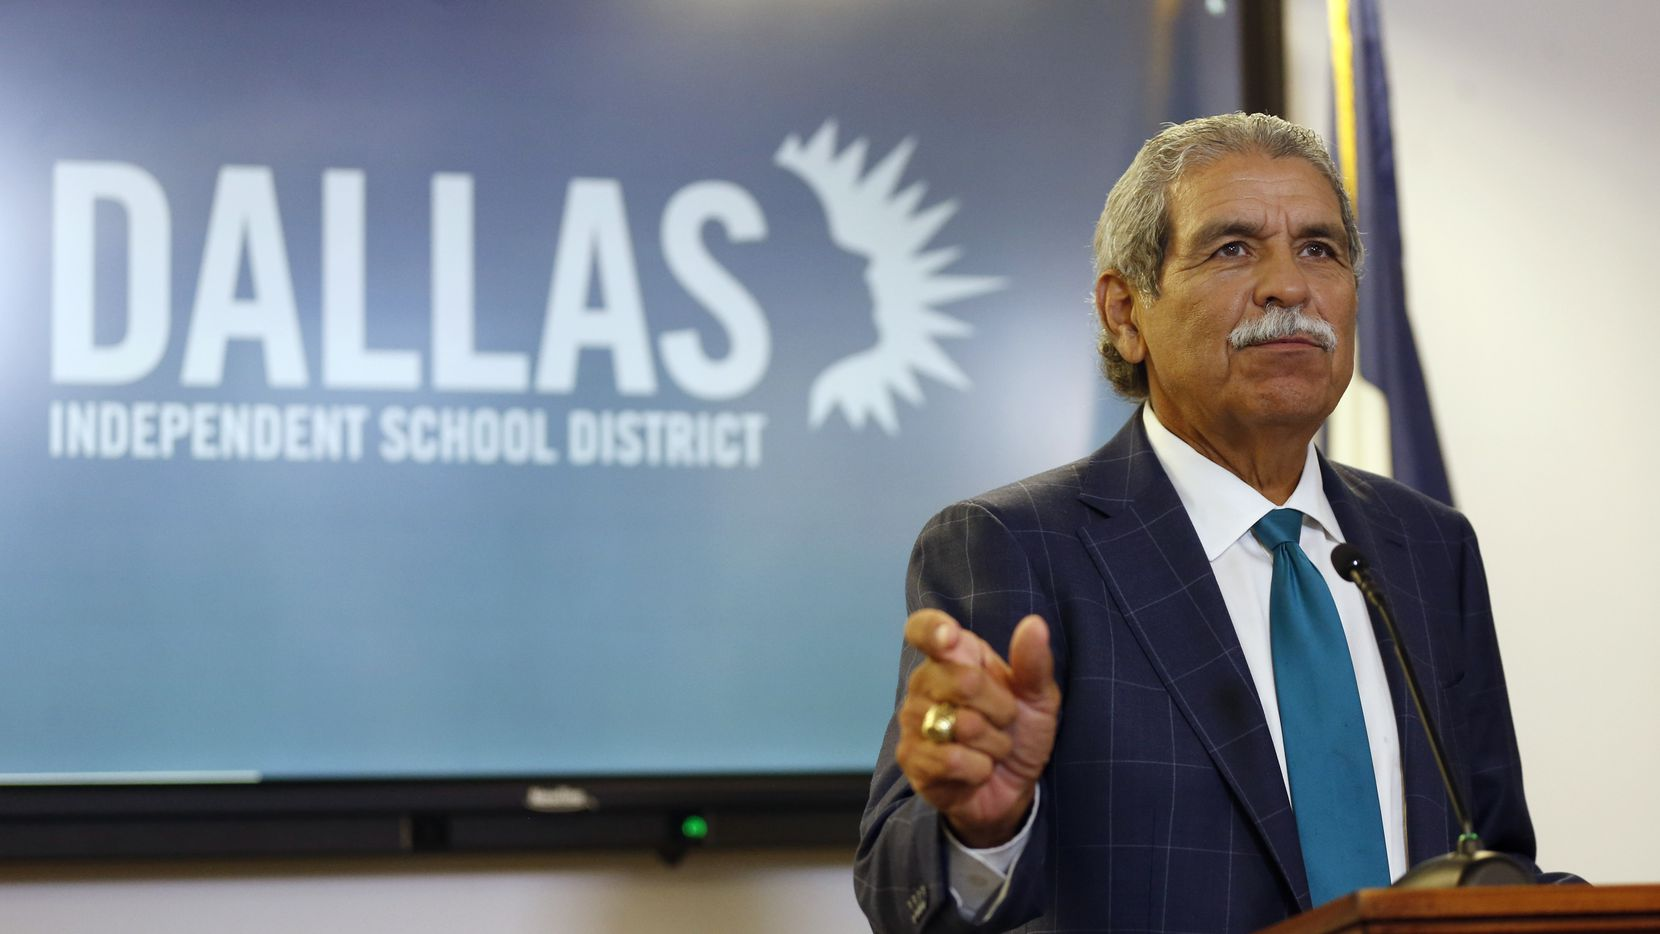 DISD superintendent Michael Hinojosa speaks to the media about starting the school year virtually during a press conference at Dallas ISD headquarters in Dallas on Thursday, August 20, 2020. Among other measures, voters approved $270 million in bonds for technology and connectivity this week. (Vernon Bryant/The Dallas Morning News)